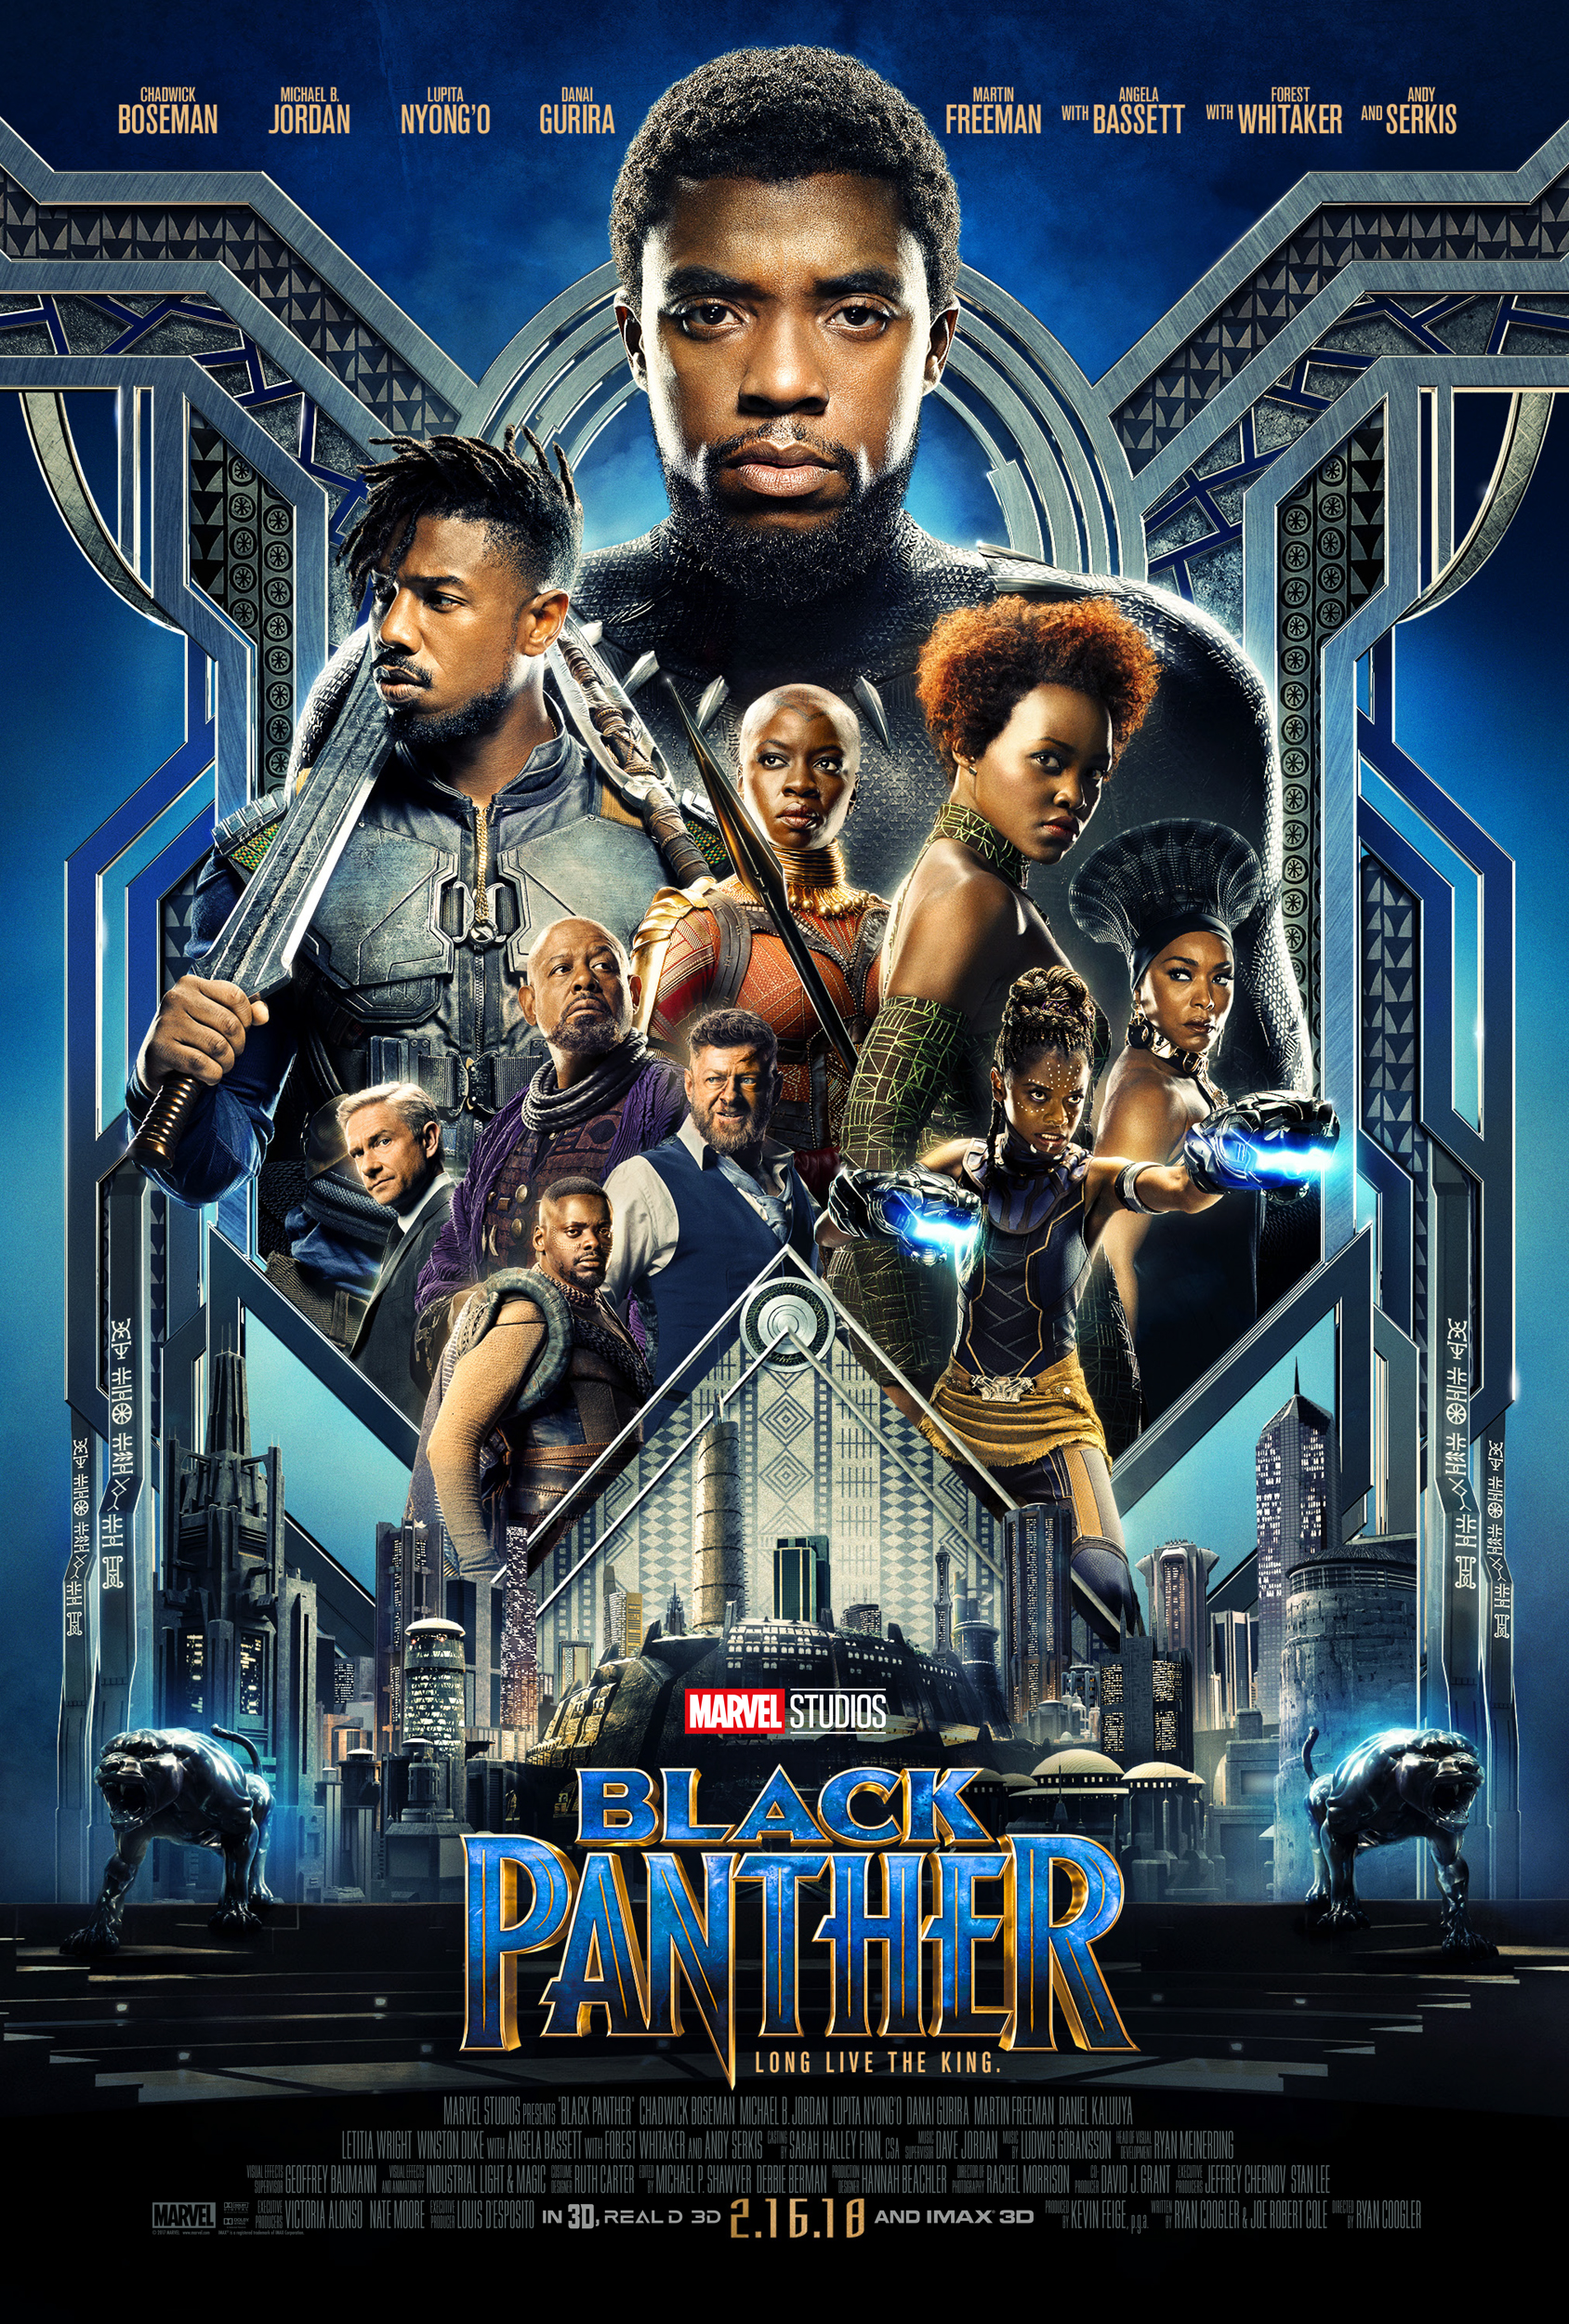 Black Panther Poster-2018 Disney Movies